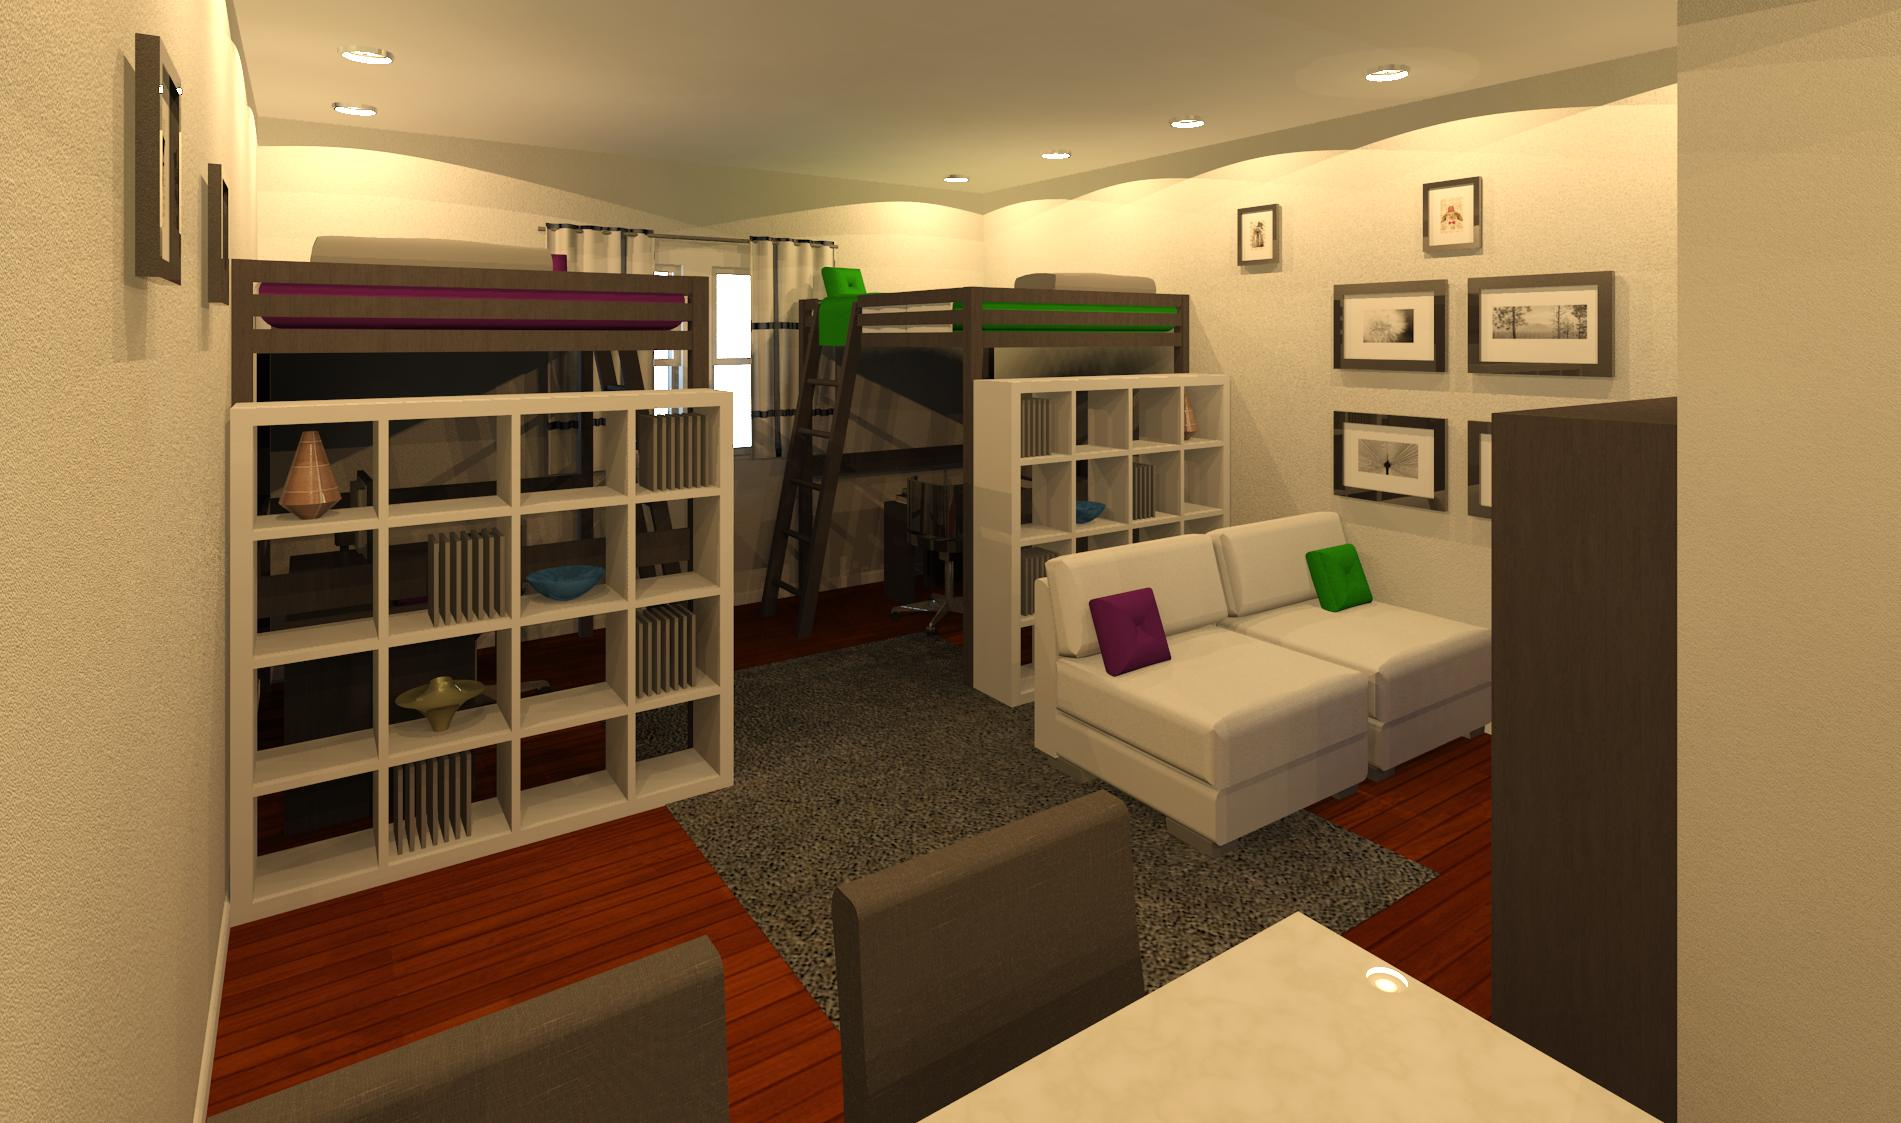 Ikea ideas studio apartment - Ikea small spaces floor plans collection ...